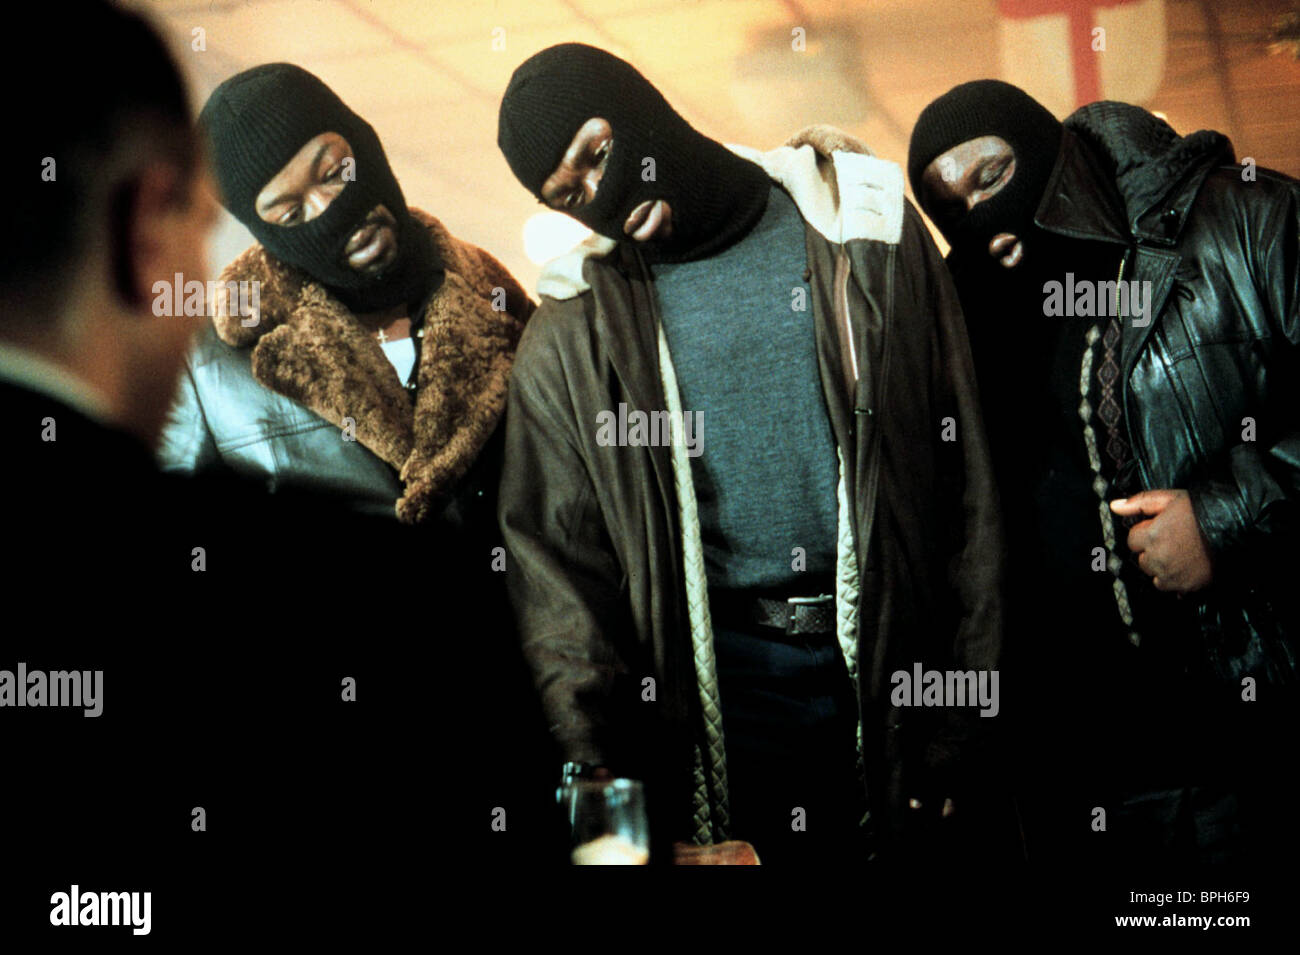 ROBBIE GEE LENNIE JAMES & ADE SNATCH (2000) - Stock Image